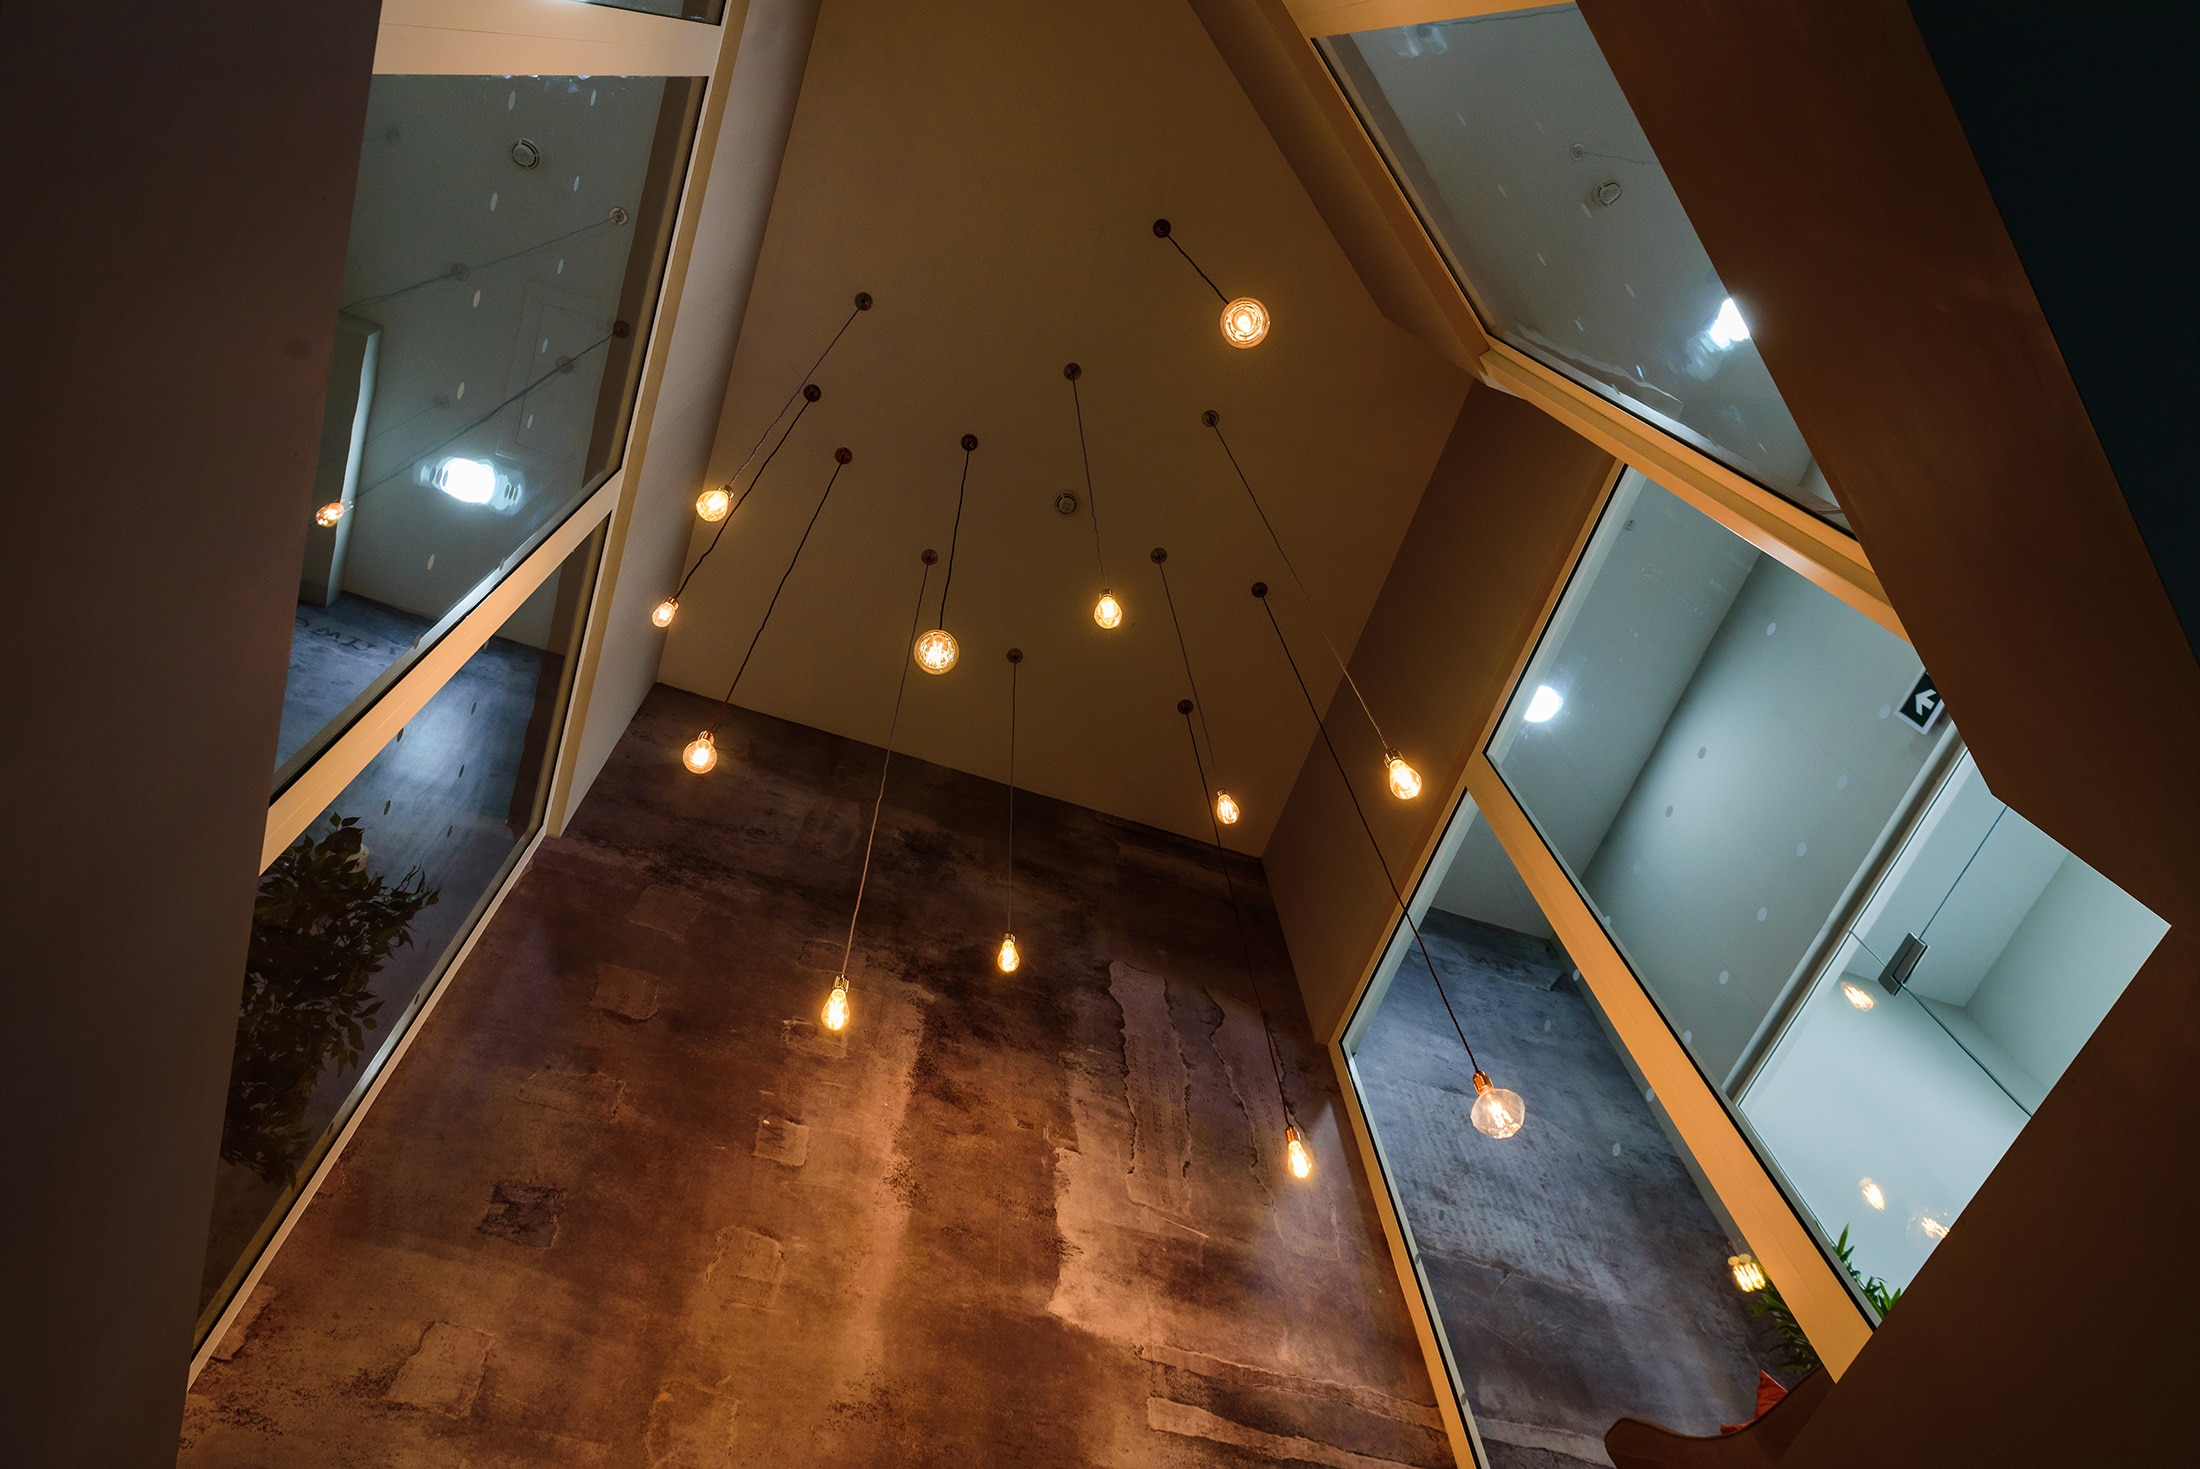 Vaulted ceiling lights